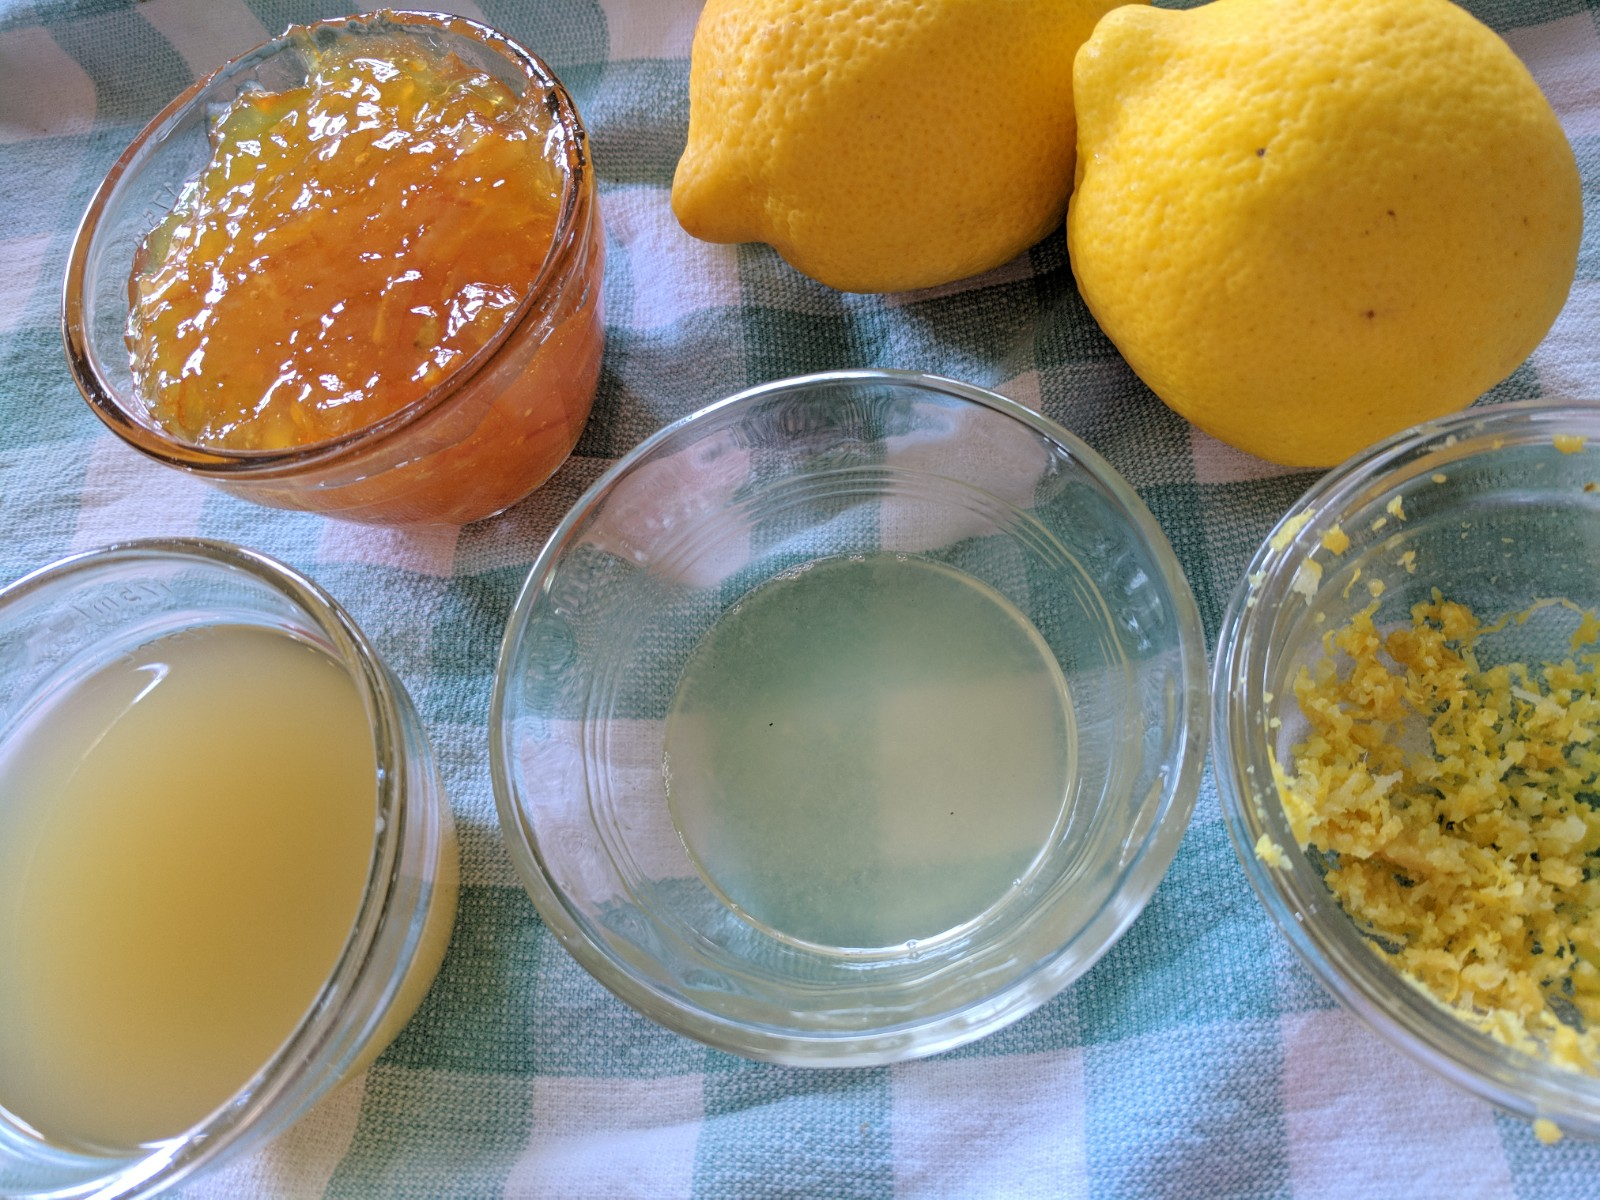 ingredients for orange marmilade